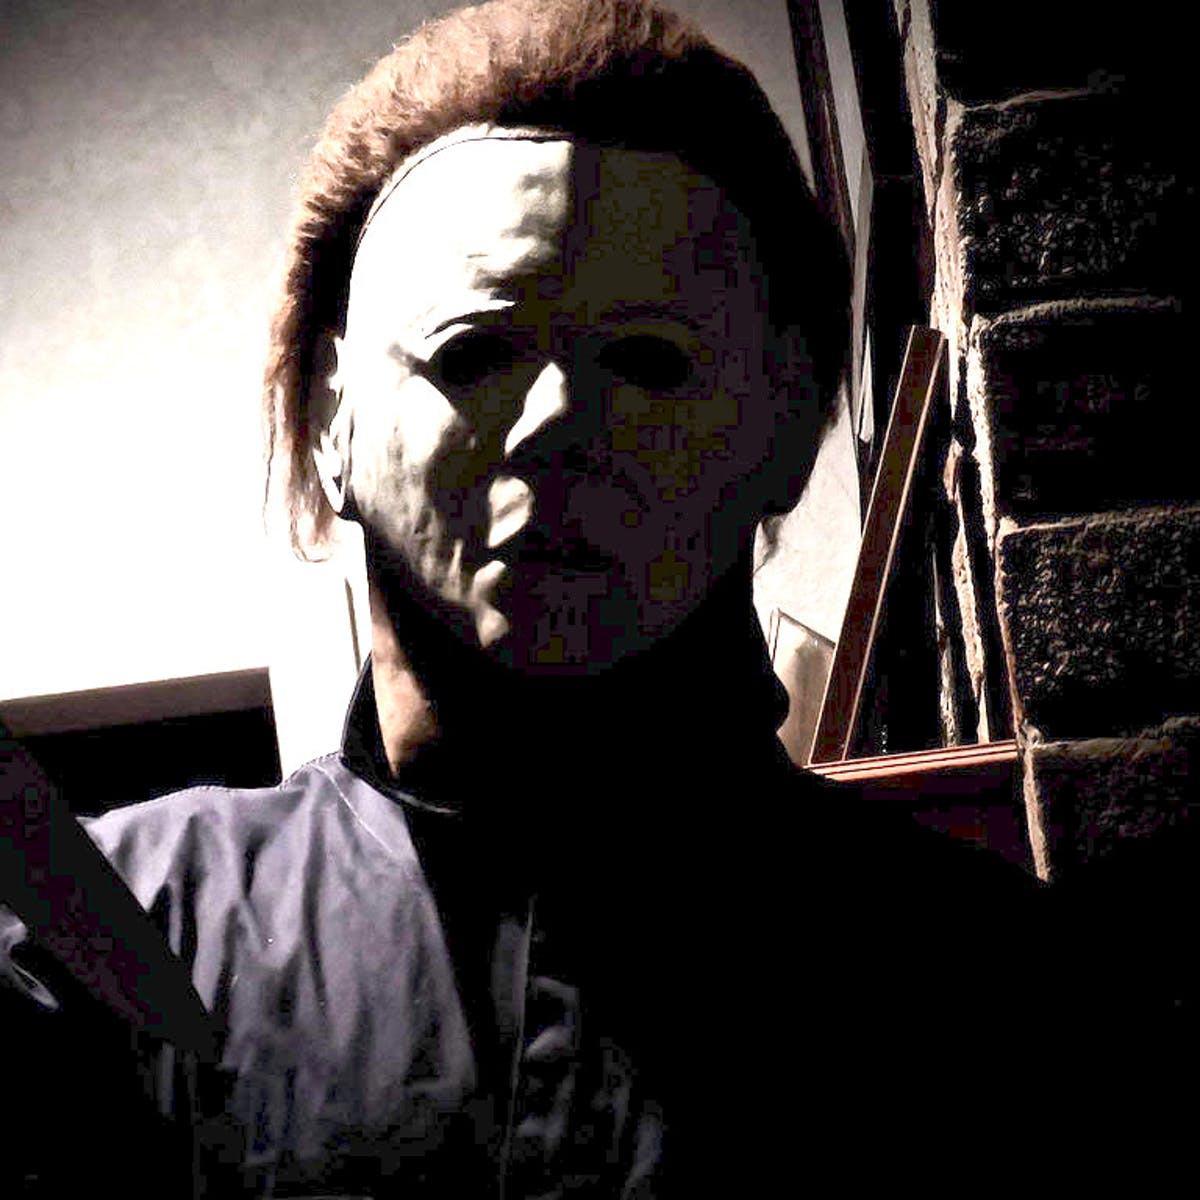 Halloween 2018 Michael Myers Knife.Who Is Michael Myers The Halloween Monster S Story So Far Inverse